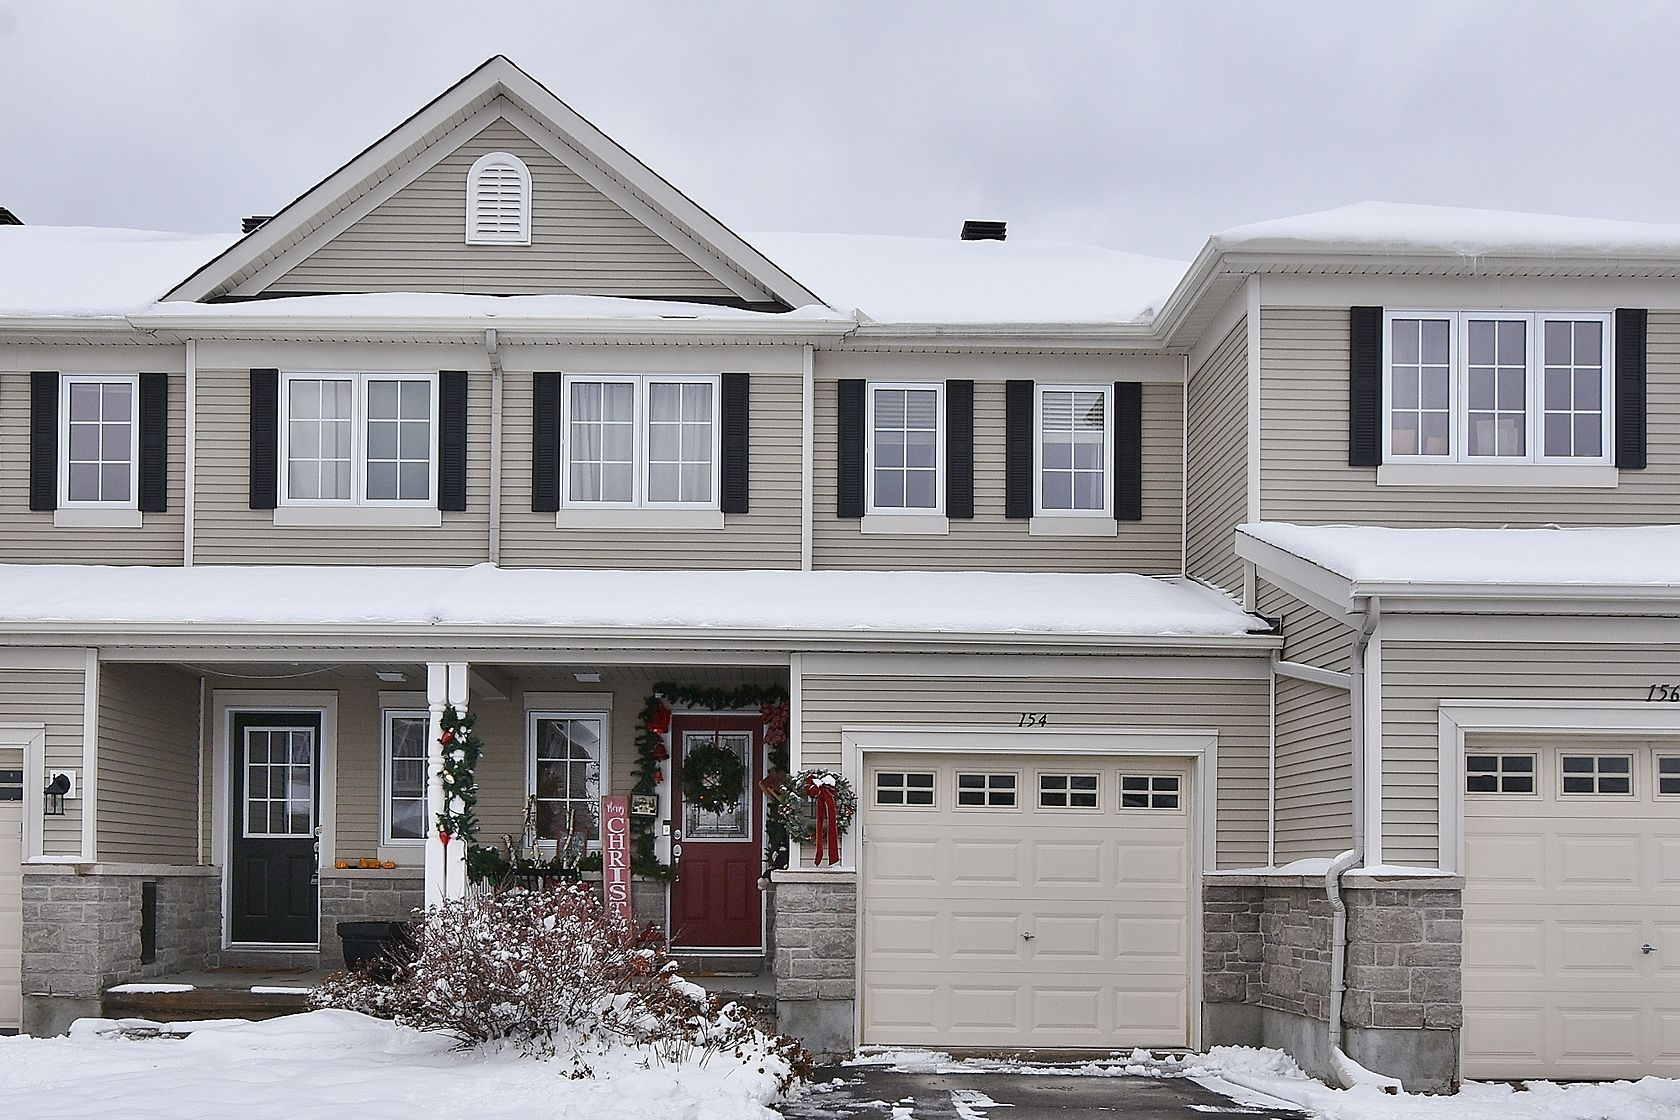 154 Patriot Place - Lovely 3 Bed, 2.5 Bath Townhome in Kanata-Trailwest area!